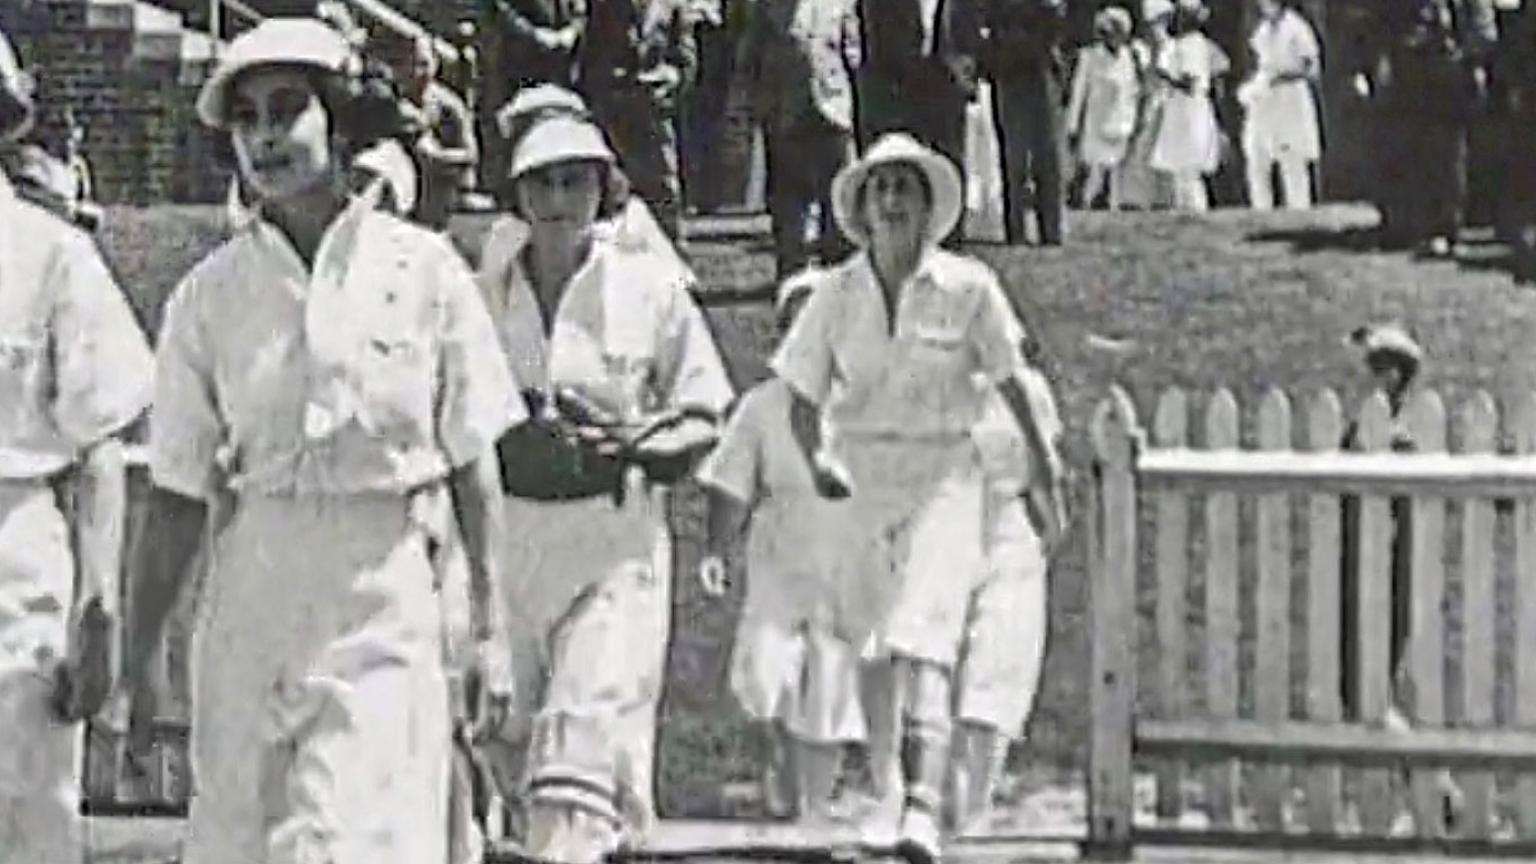 A team of women cricketers from the 1930s walking onto a cricket field in white uniforms.